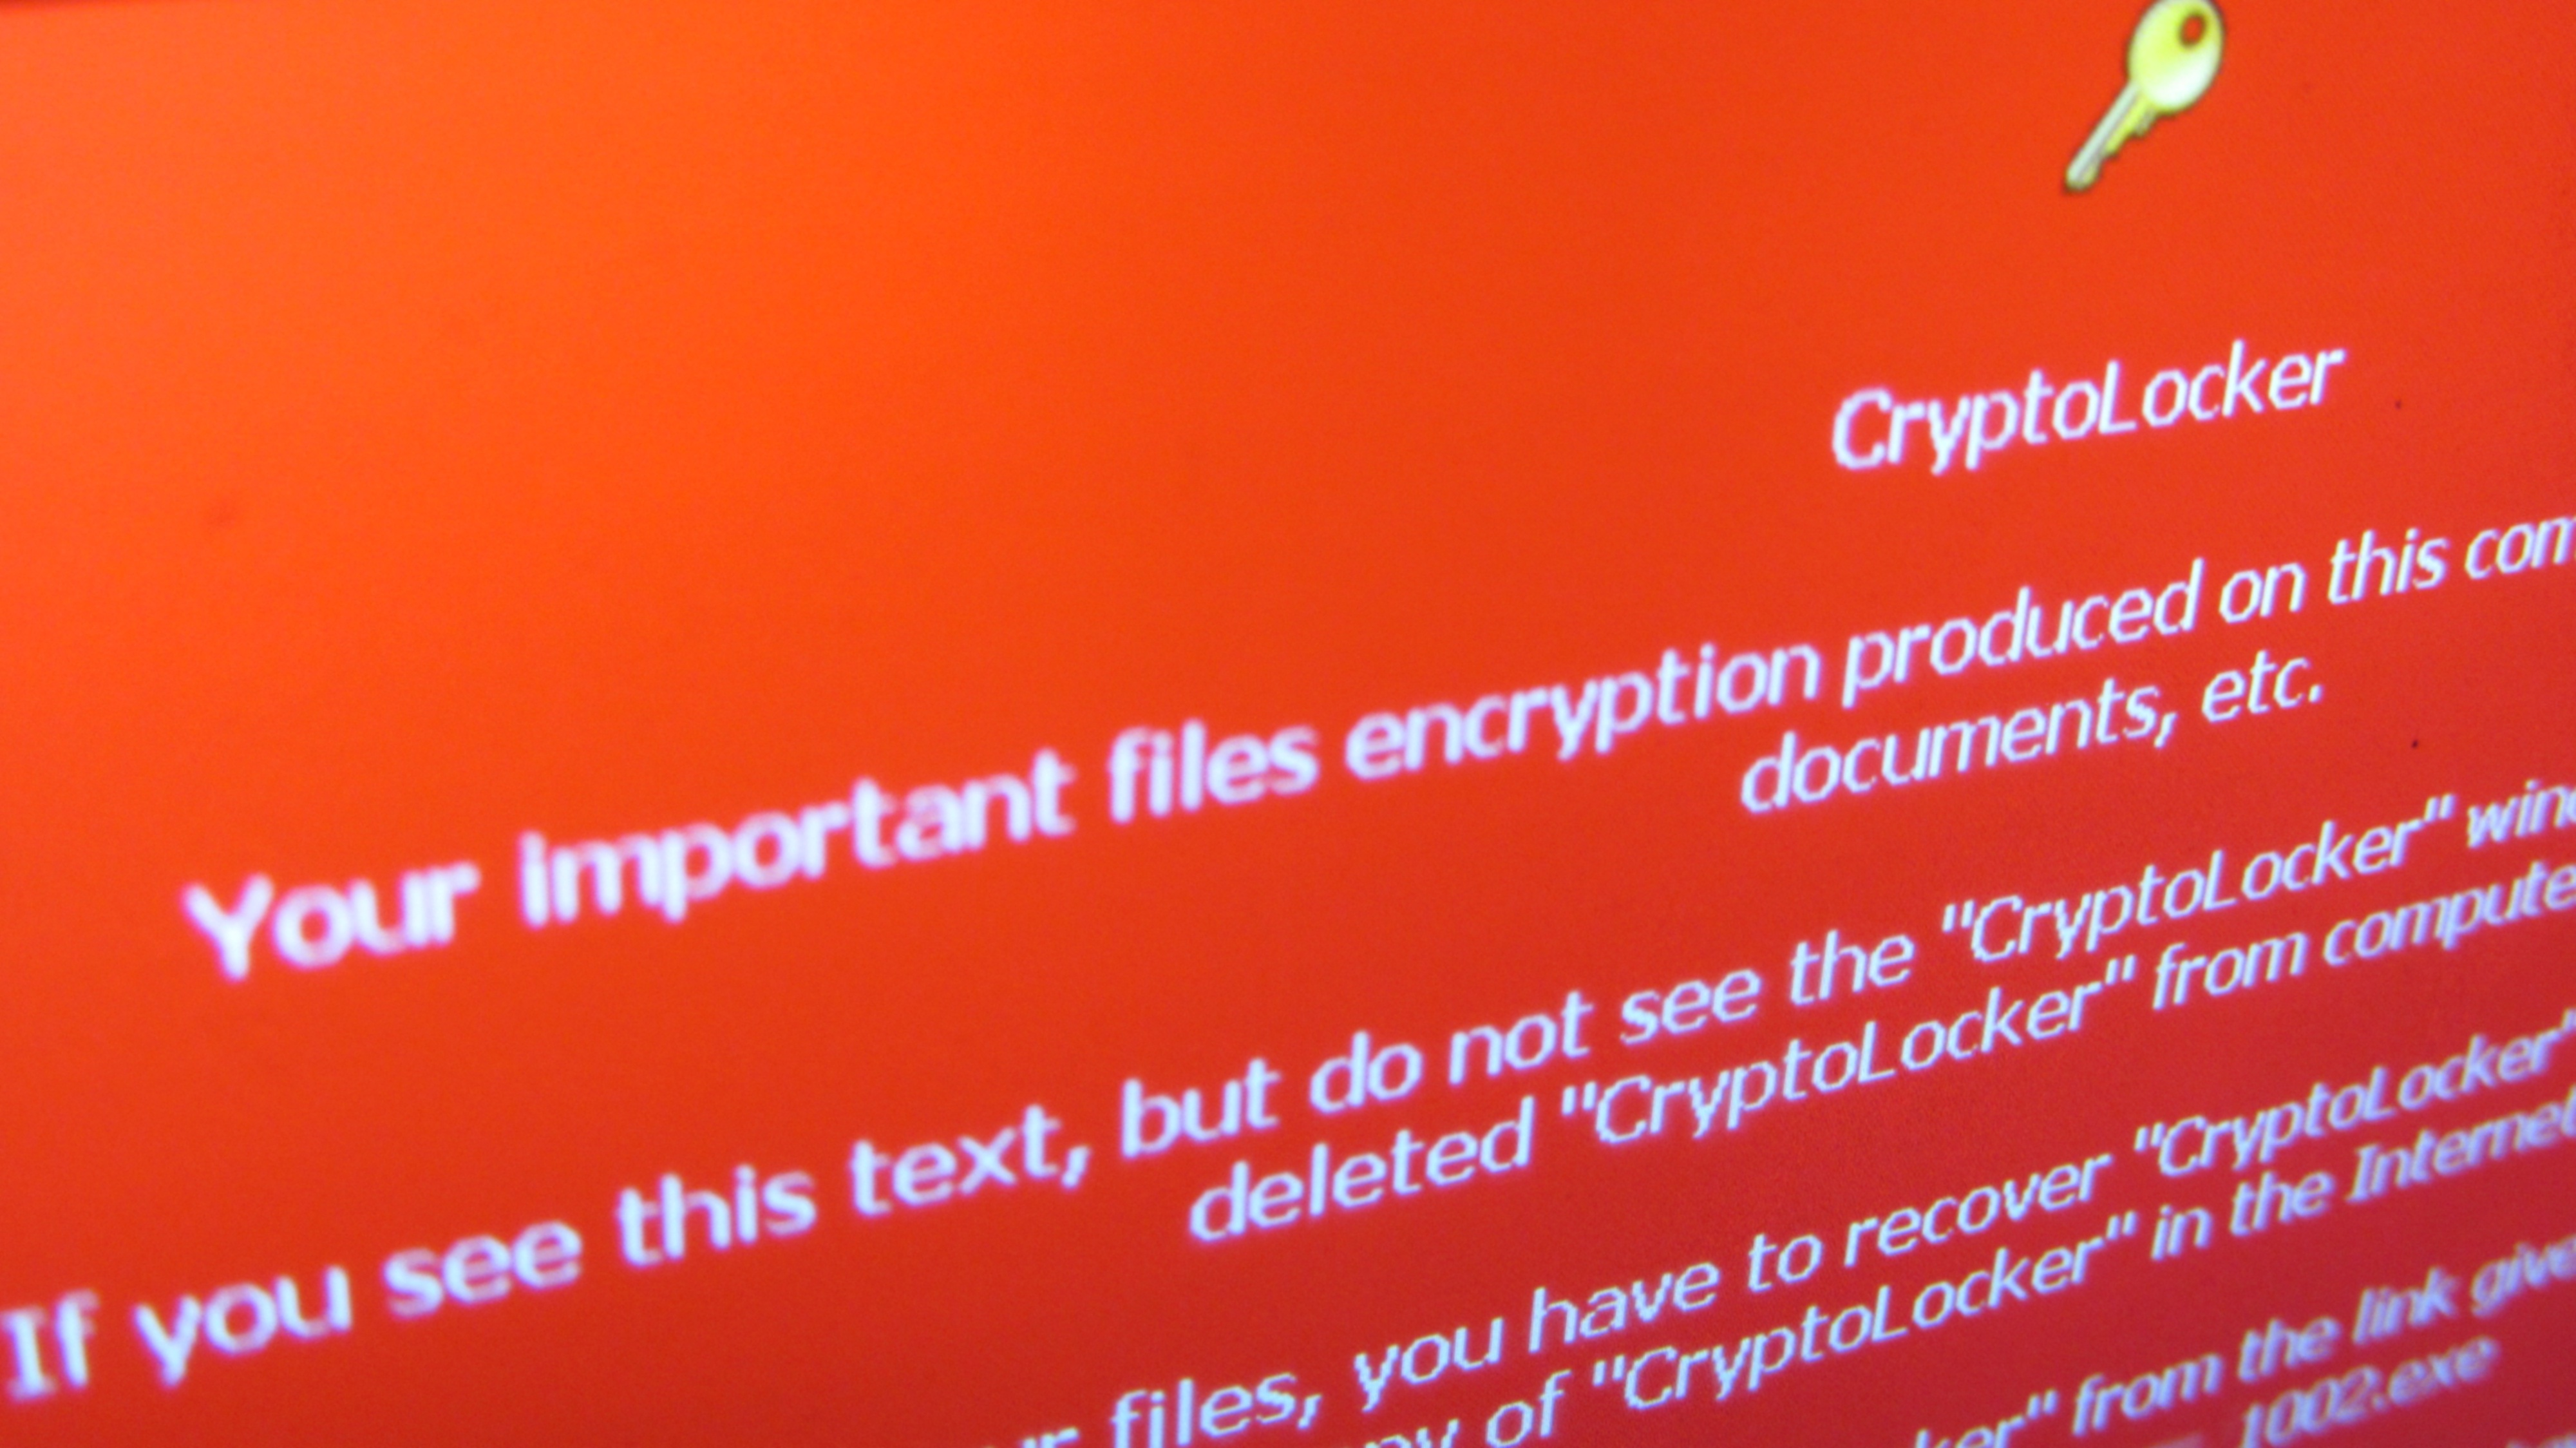 The simple way to stop your business from being extorted by ransomware